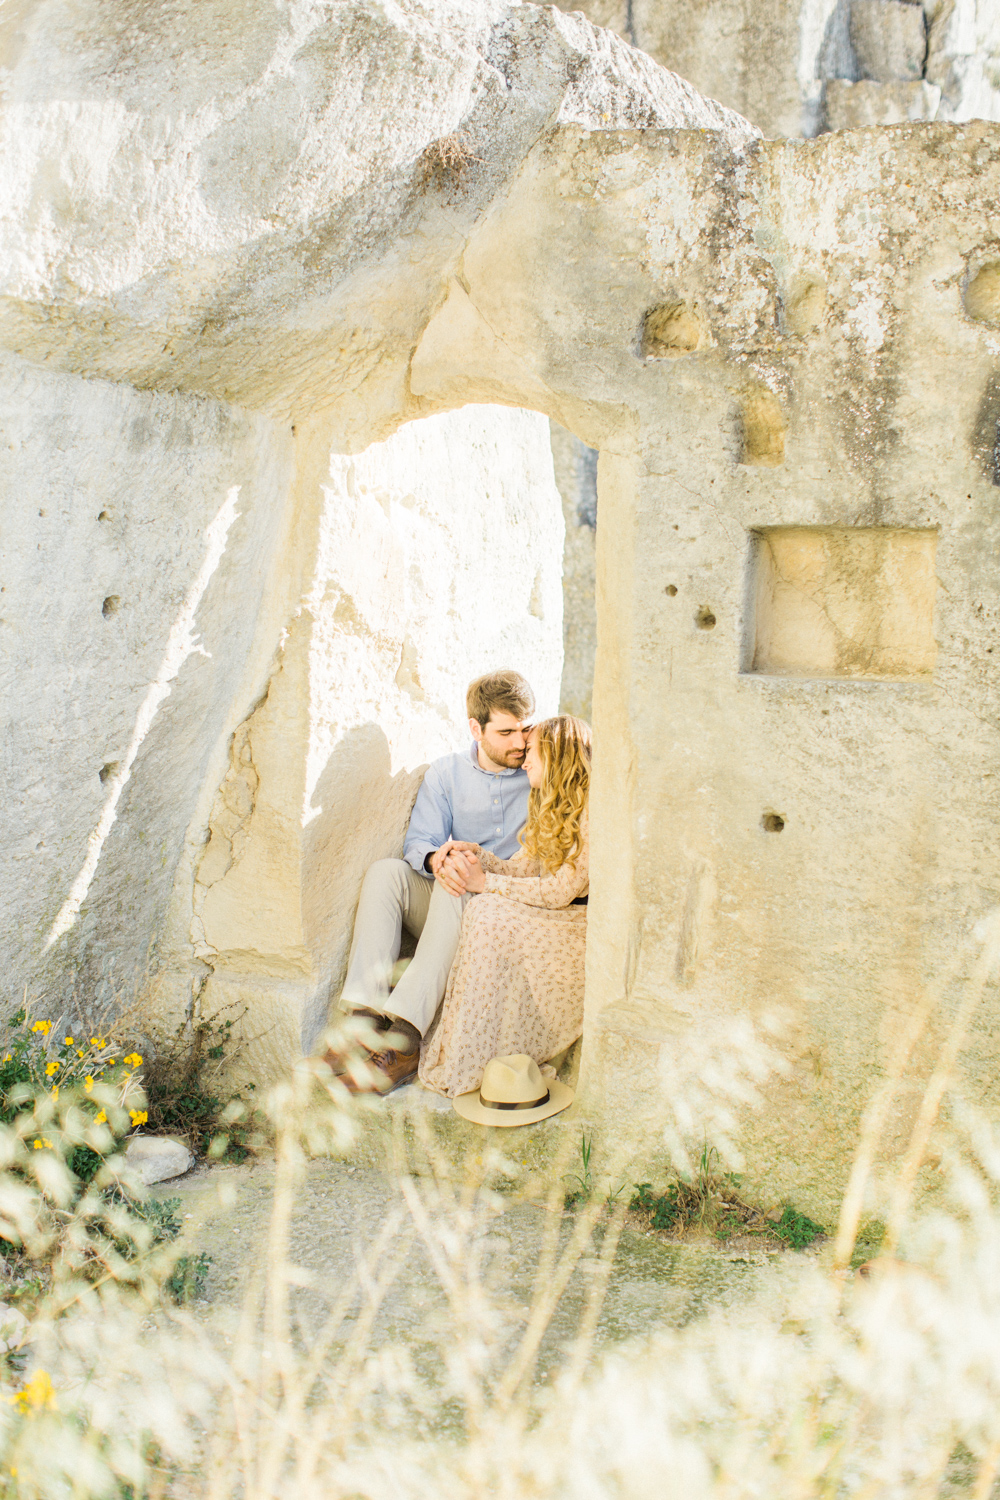 Chateau-des-Baux-de-Provence-Engagement-Session-6.jpg